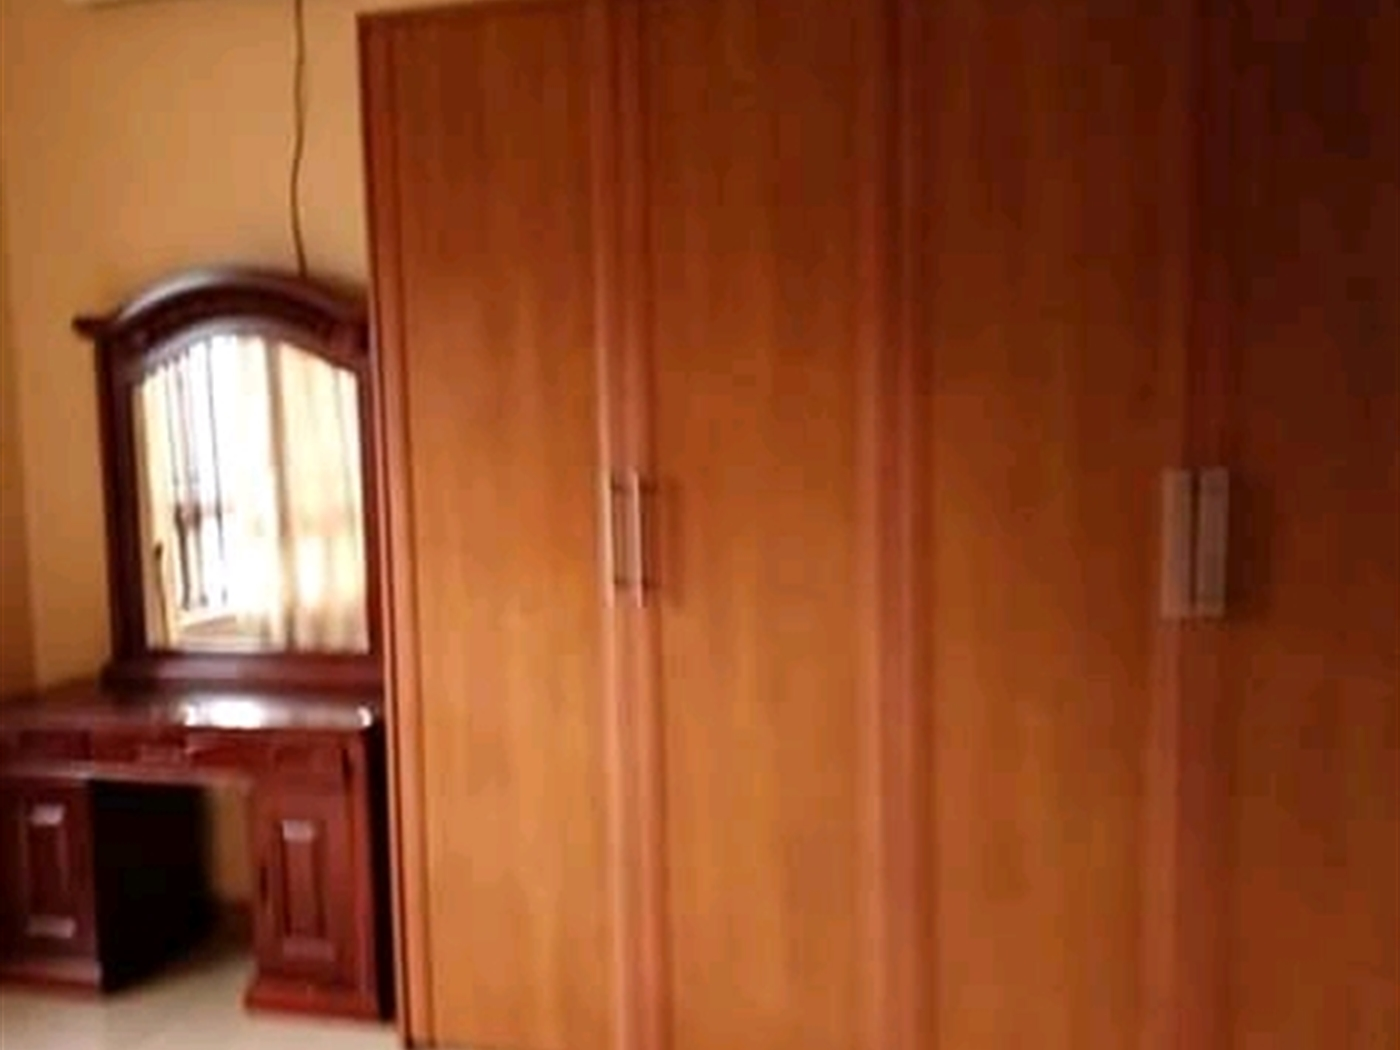 Apartment for rent in Bukoto Kampala